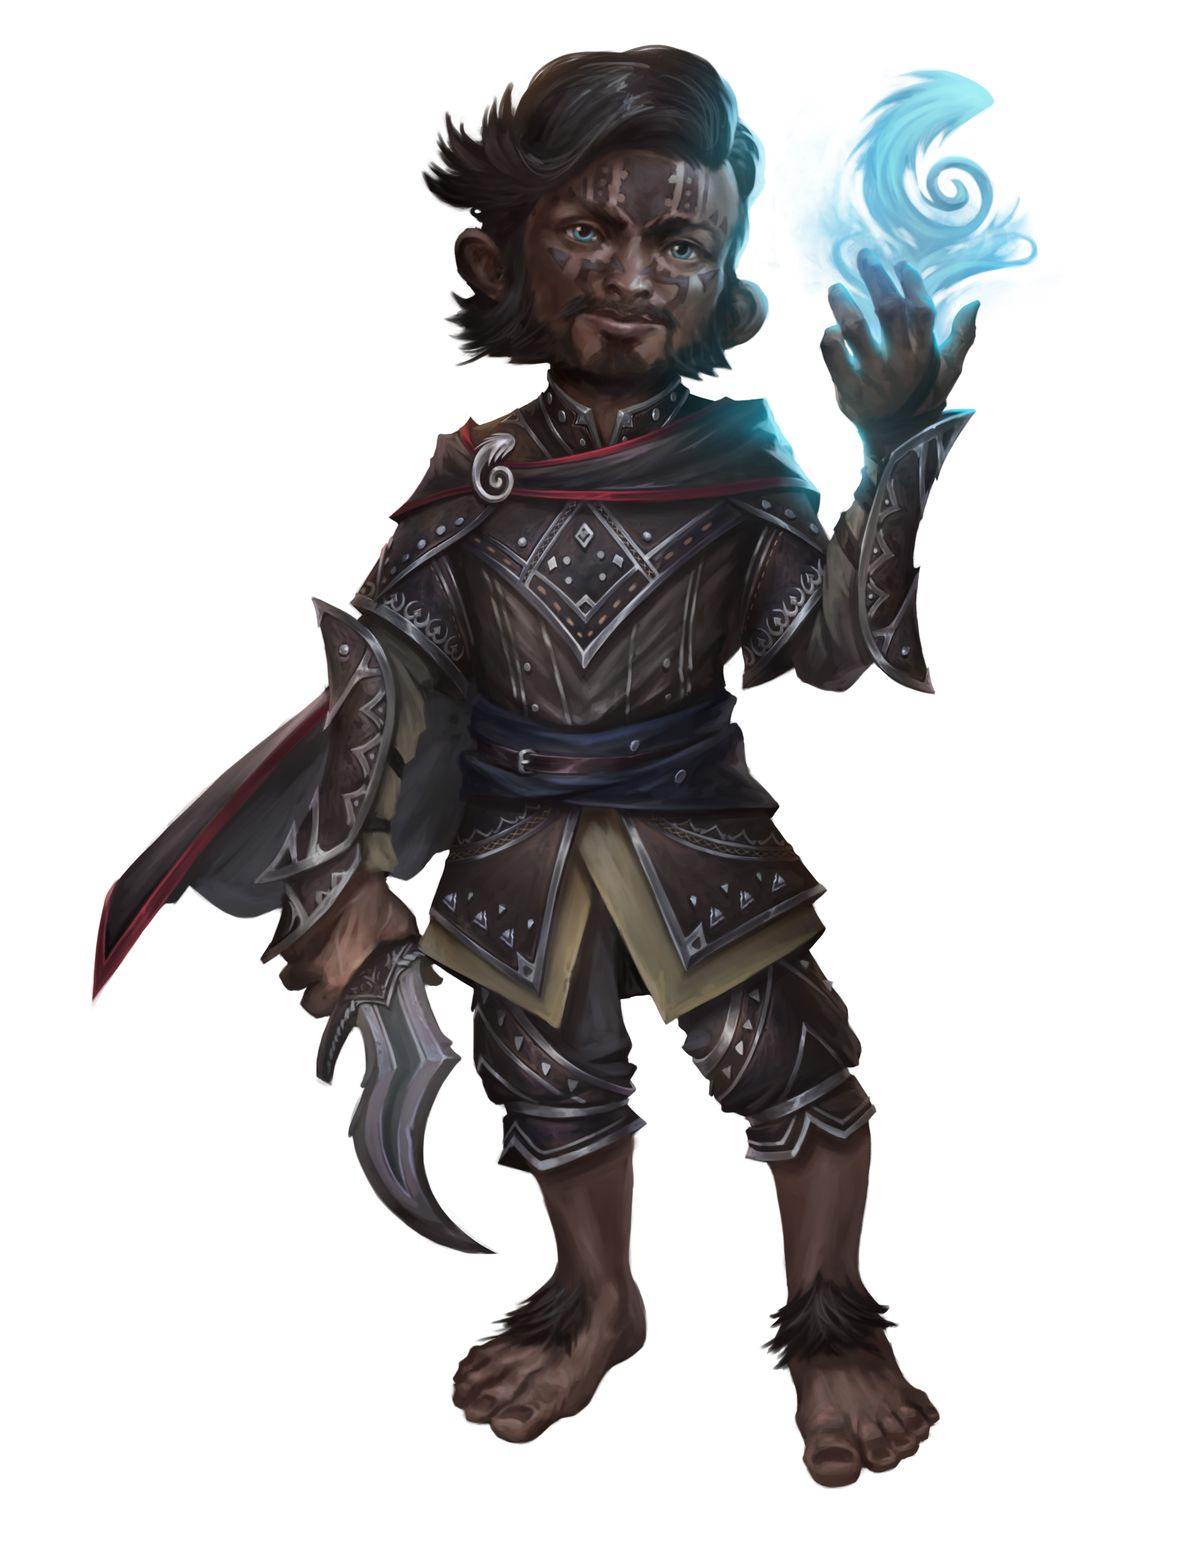 A halfling cleric from the Pathfinder Core Rulebook, second edition. He stands barefoot and has face tattoos. He holds a long, curved dagger with exotic armor to match.